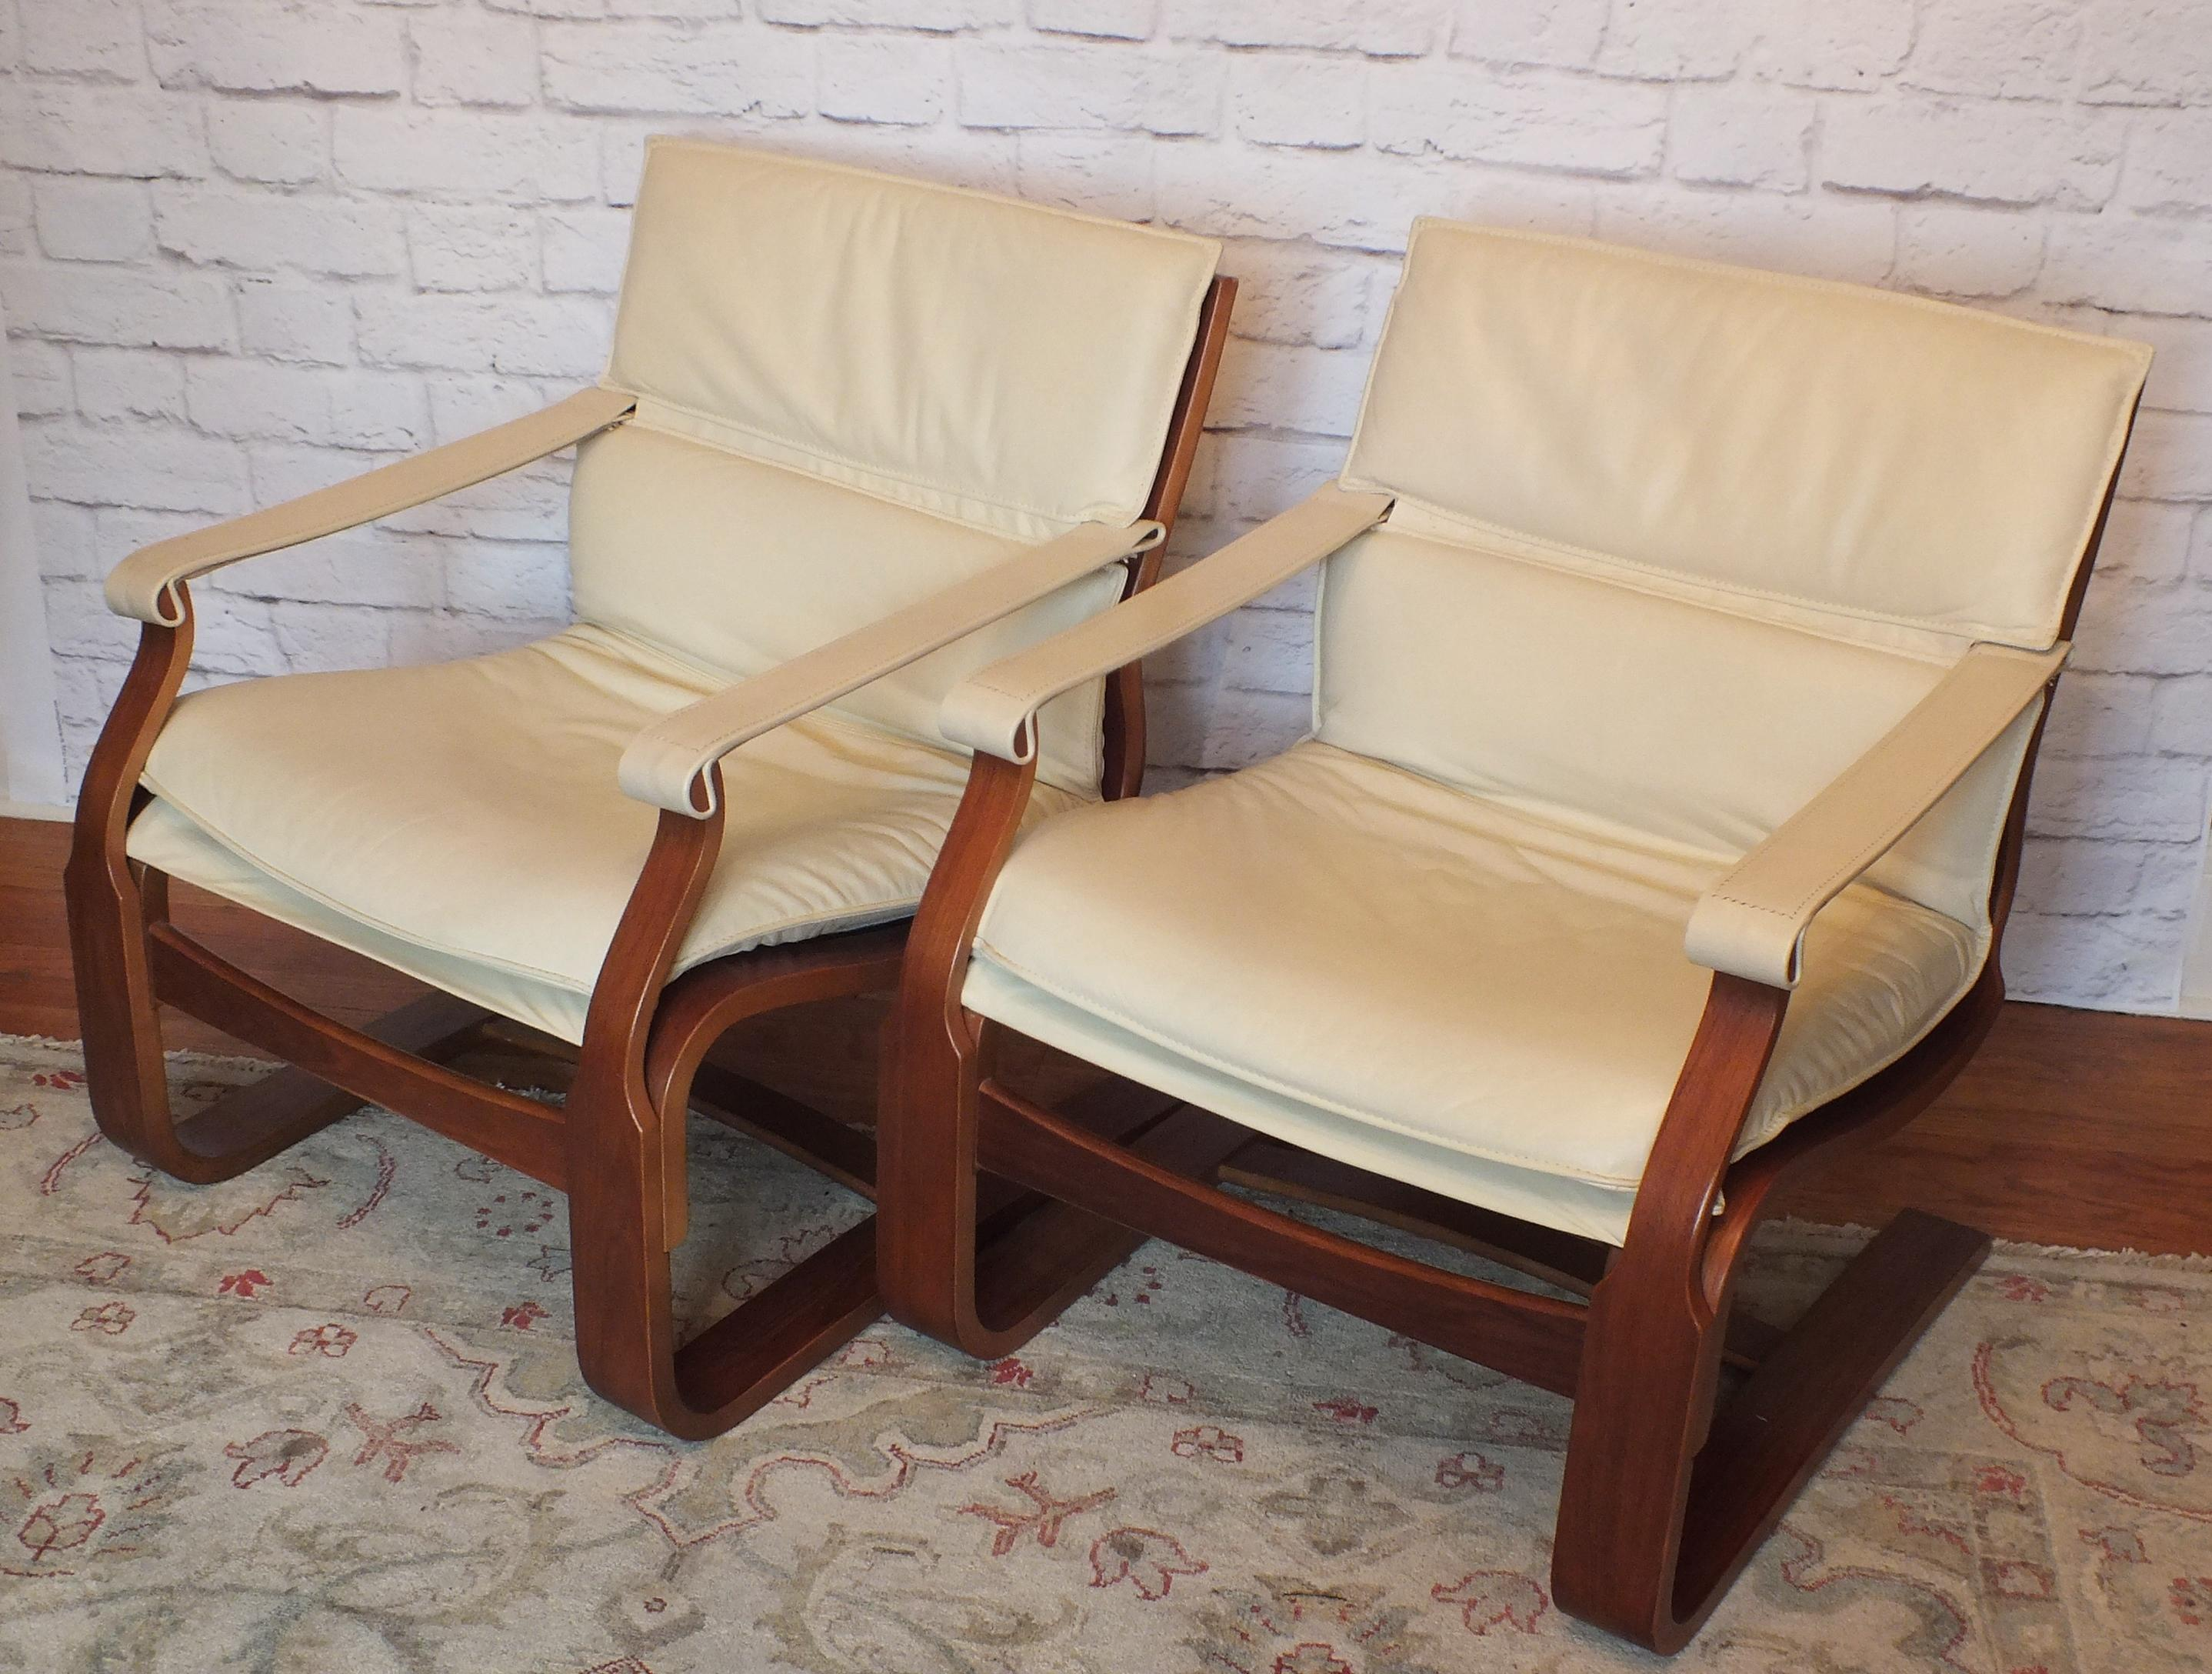 Fabulous Pair Of Mid Century 1970u0027s Lounge Style Chairs Designed By Ake  Fribytter For Nelo. Contemporary White Leather ...